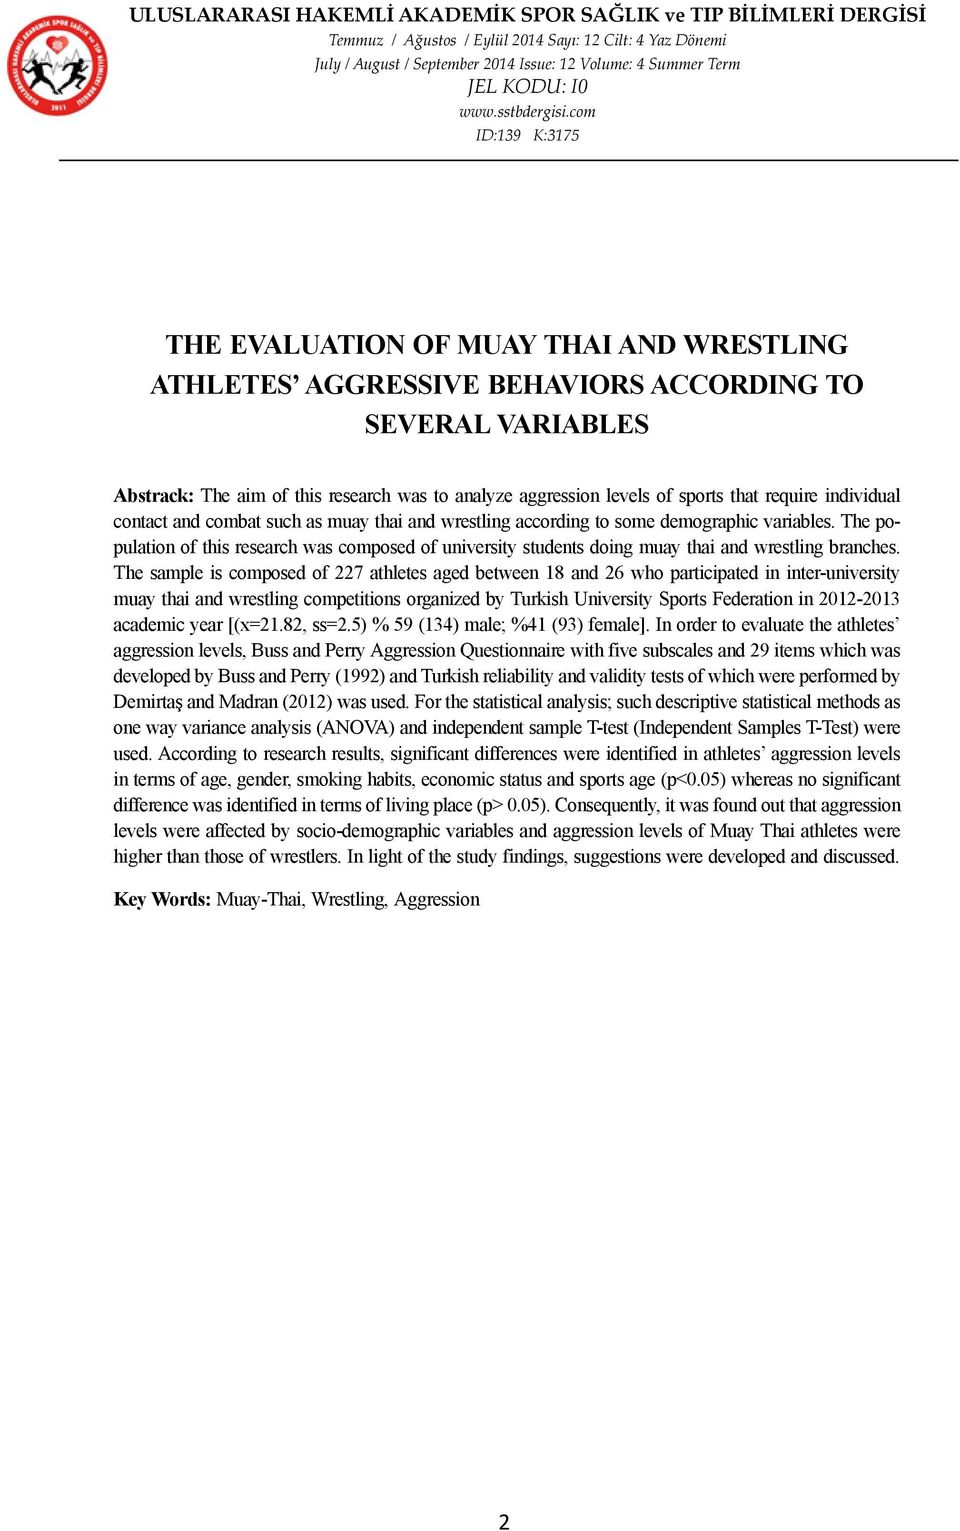 The population of this research was composed of university students doing muay thai and wrestling branches.